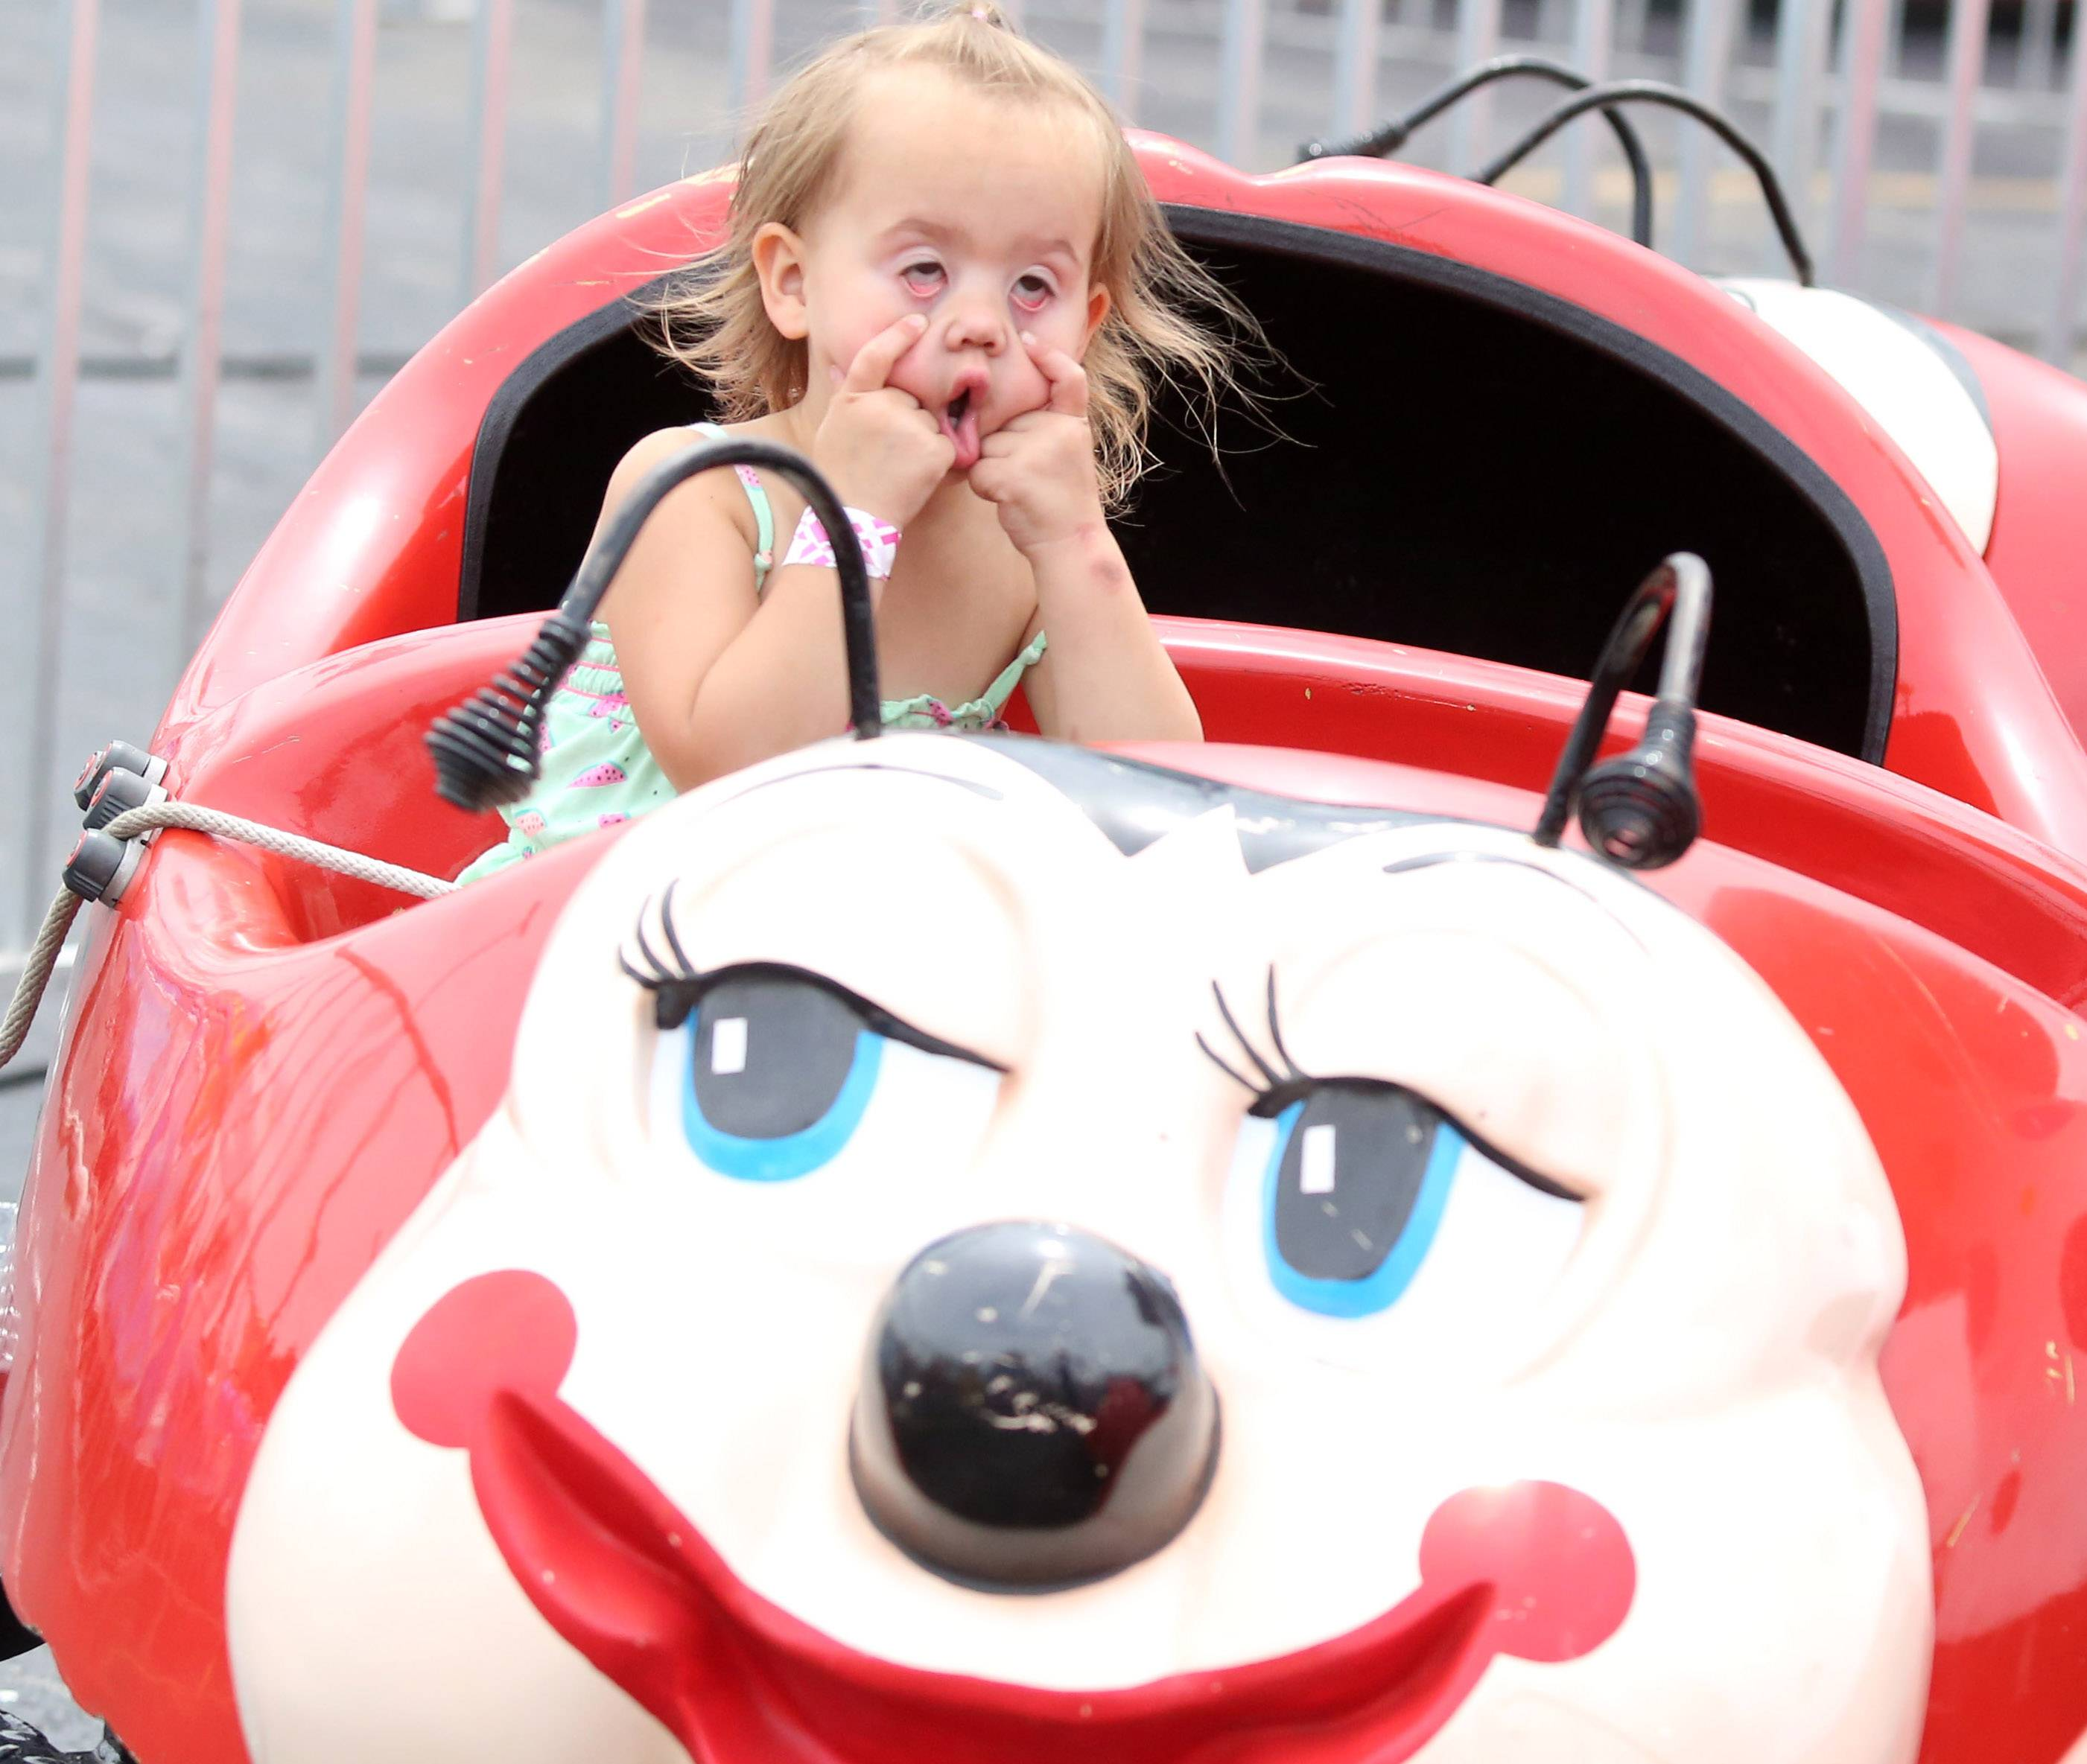 Paige Swarthout, 3, of Carpentersville, makes faces at her parents as she rides the Ladybug at Northwest Fourth-Fest on Saturday in Hoffman Estates.